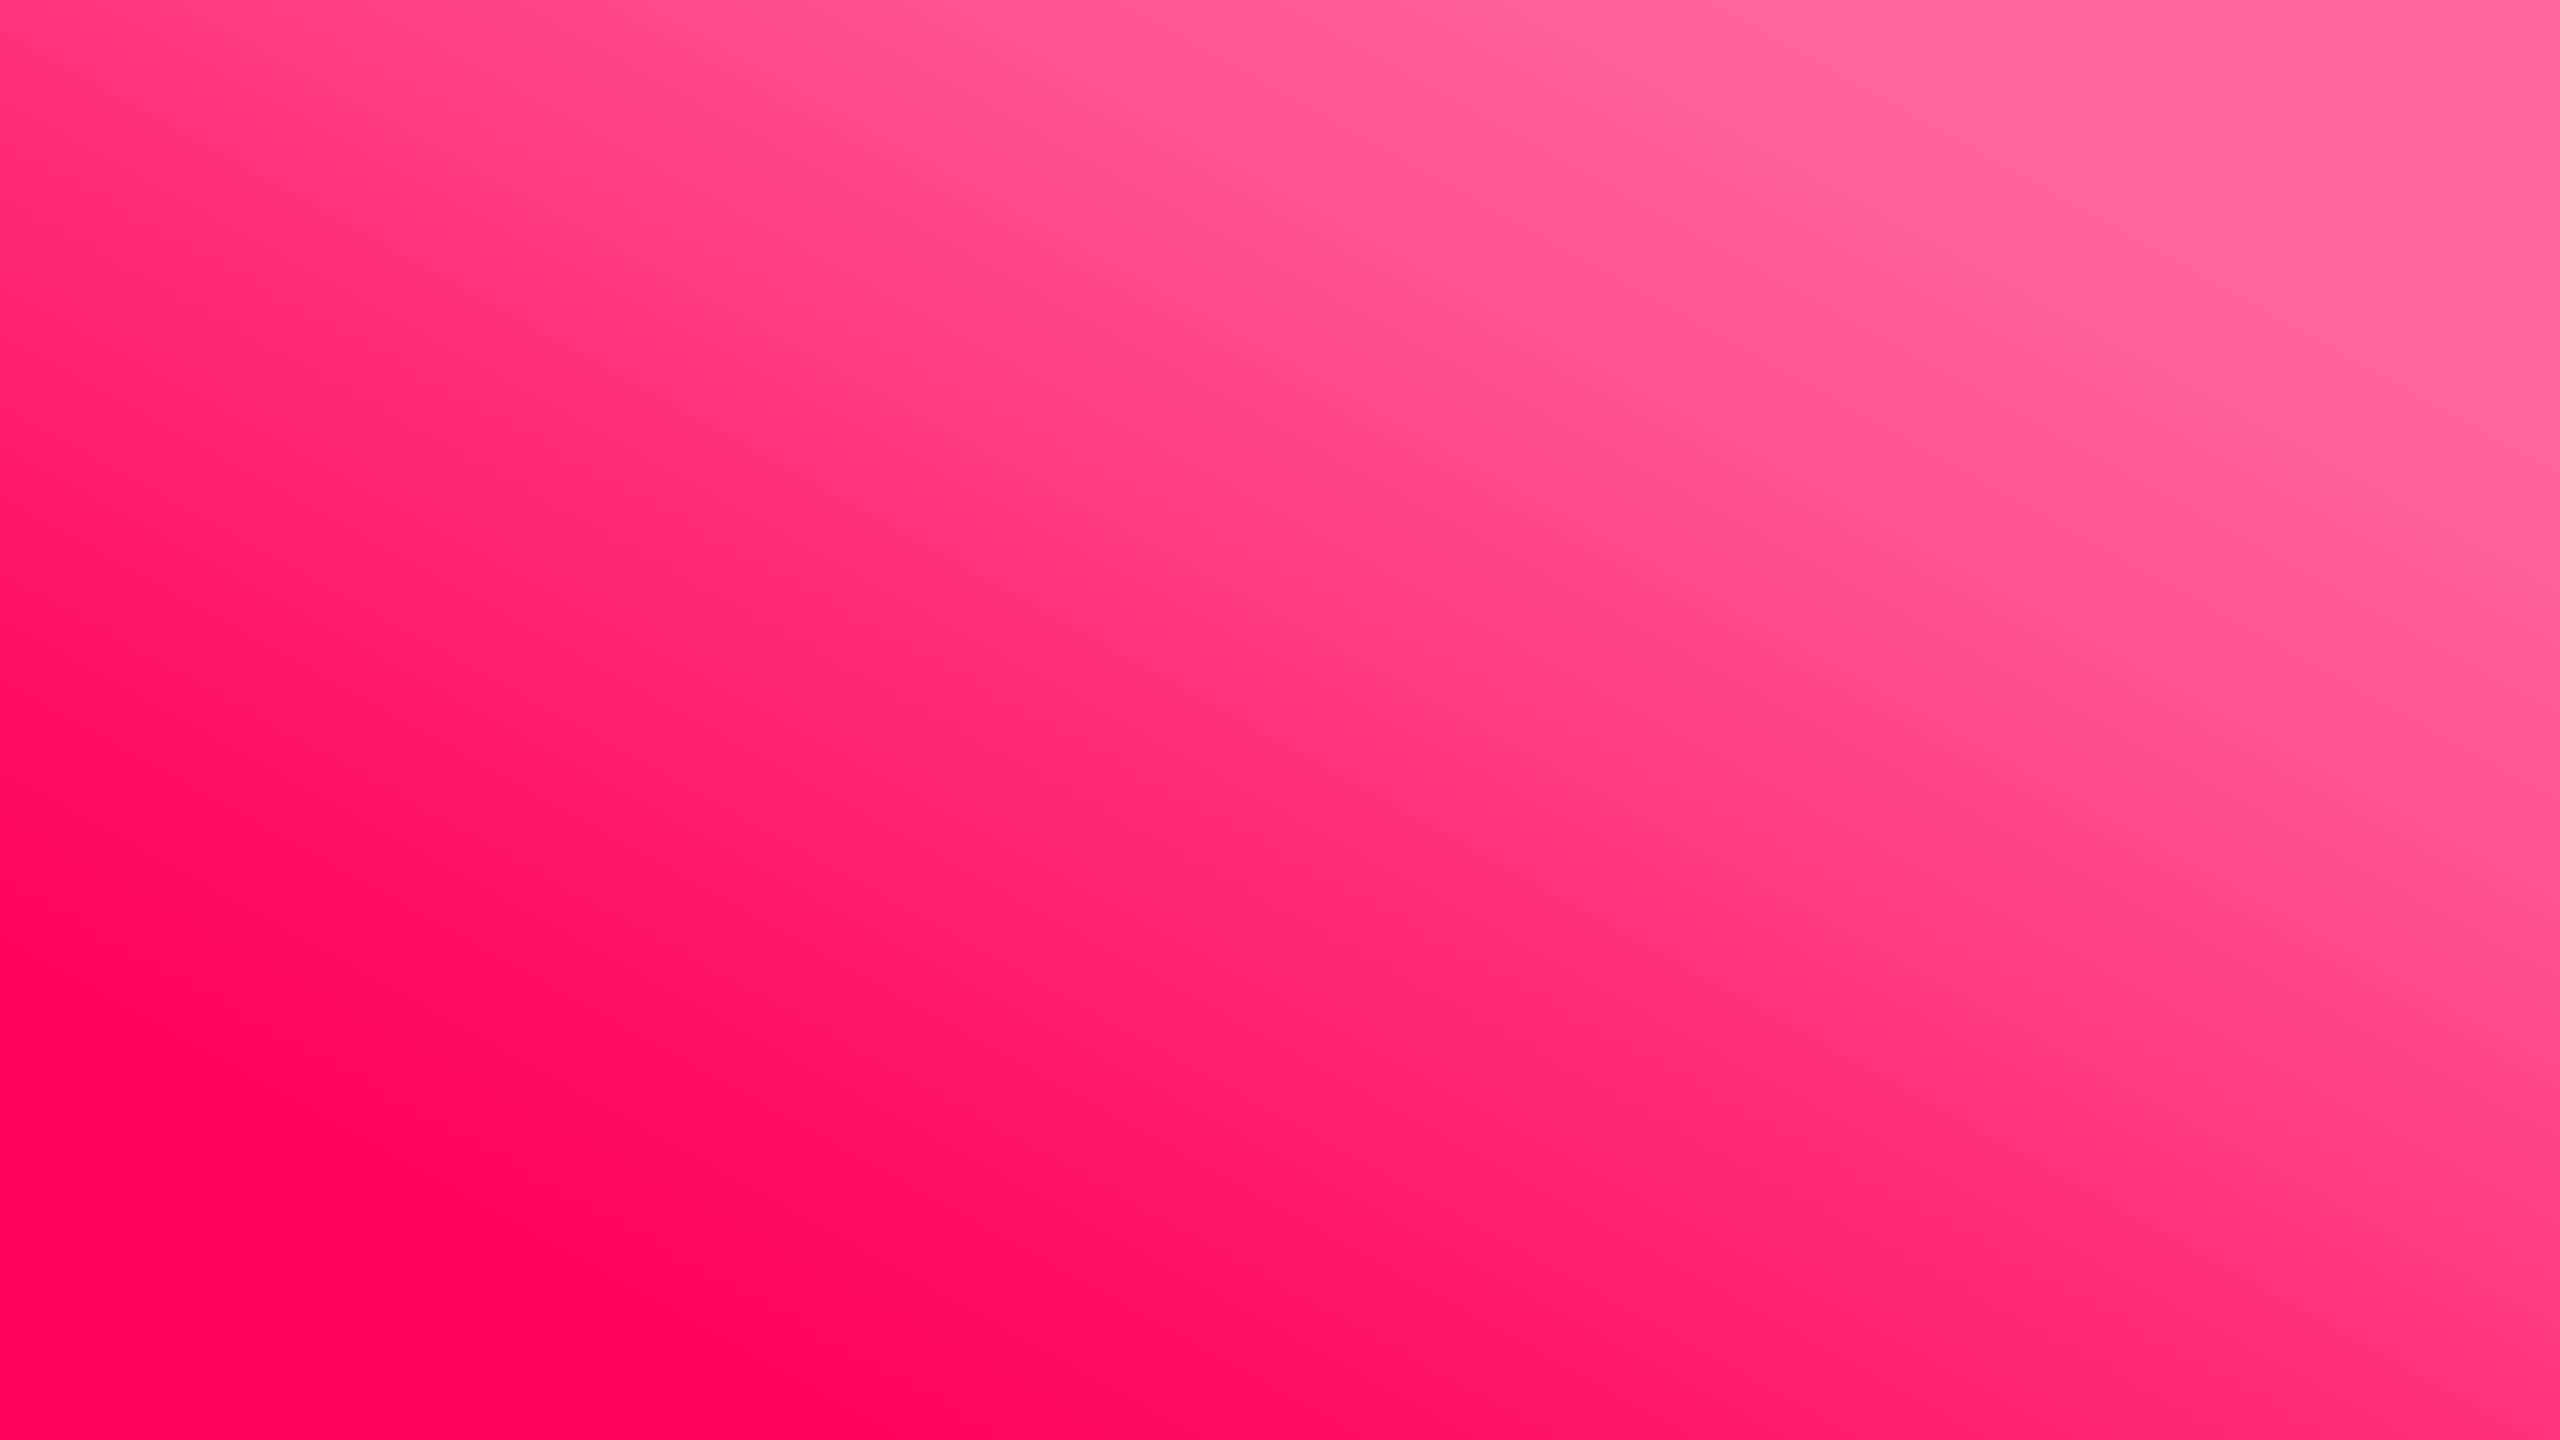 Preview wallpaper pink, solid, color, light, bright 2560×1440